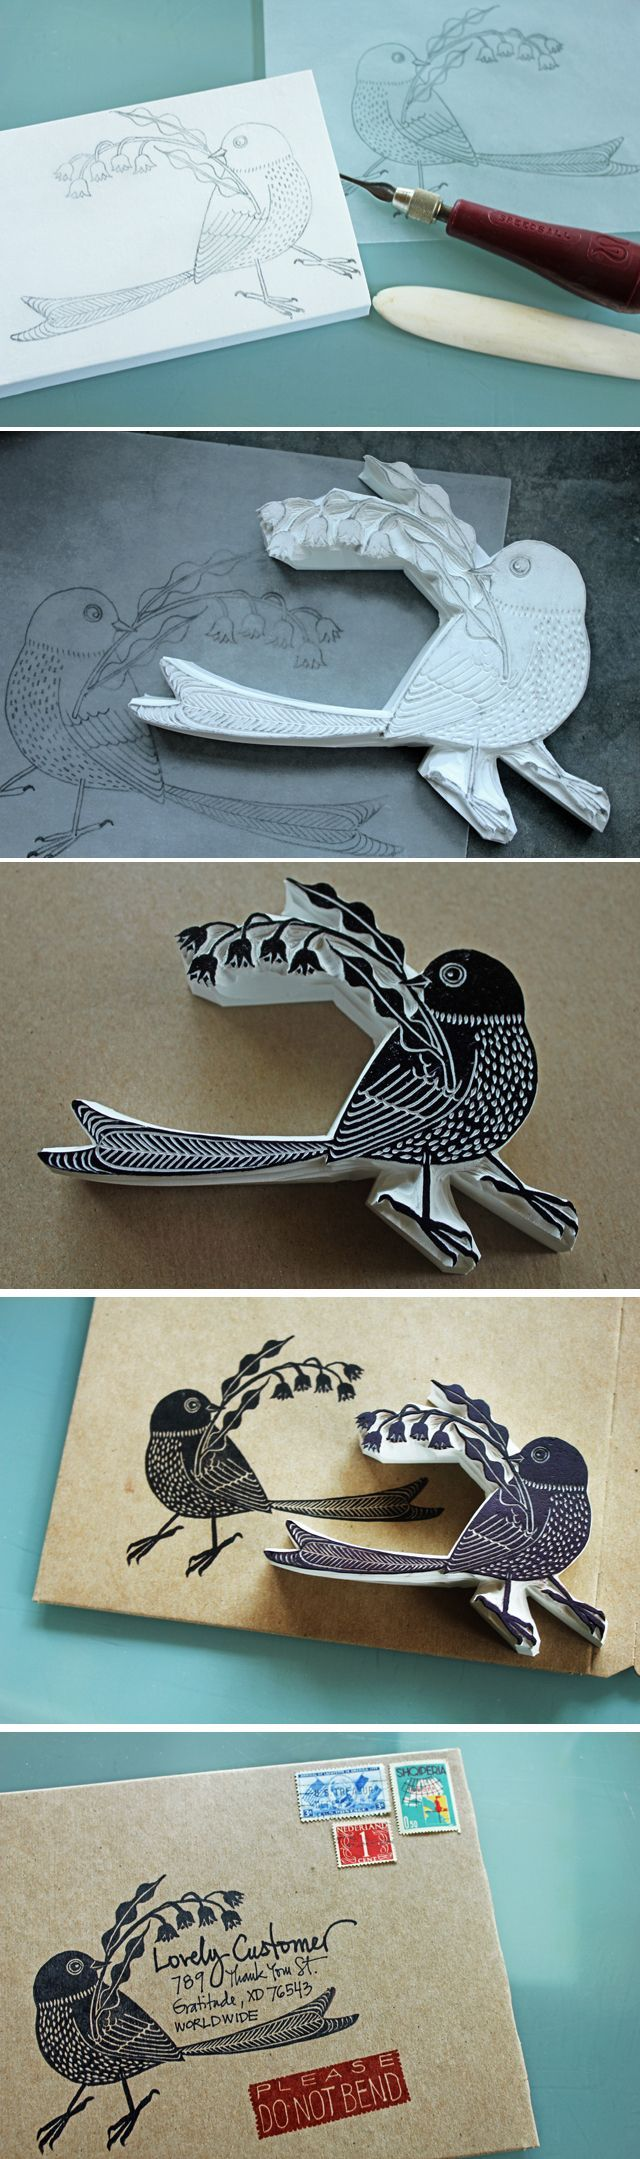 Lilies of the Valley - diy stamp bird